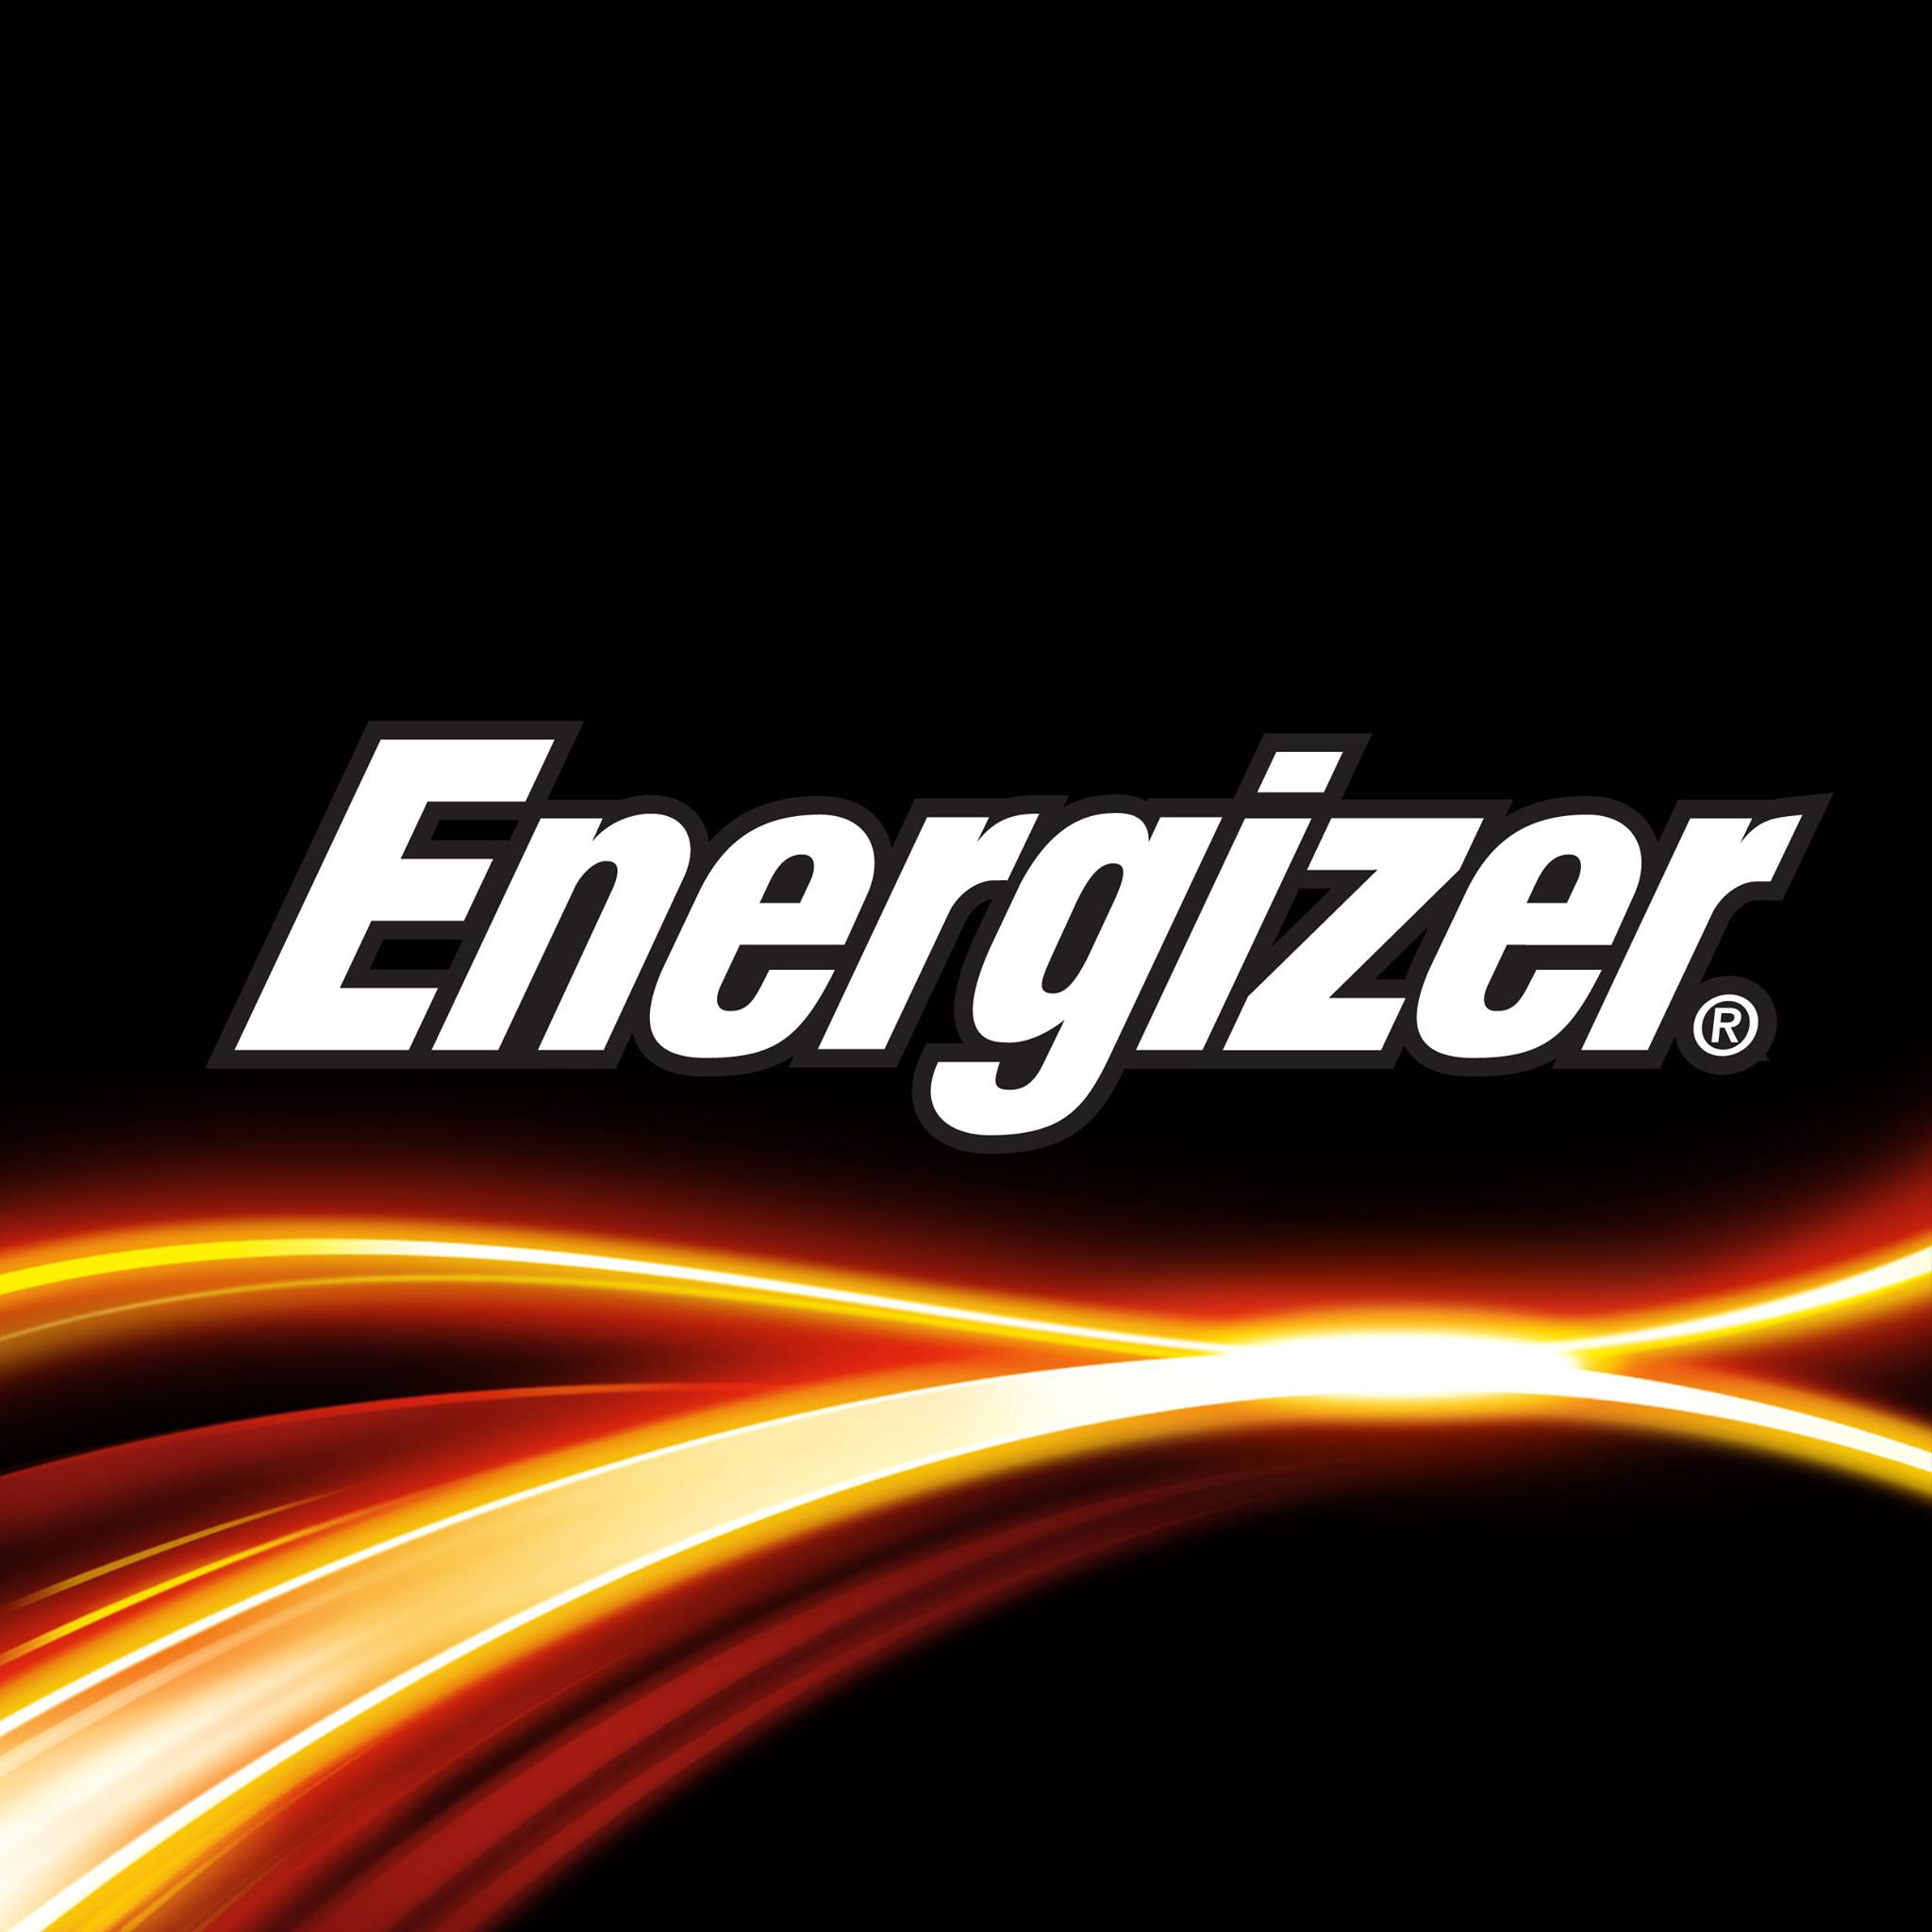 Energizer Holdings, Inc. announces pricing of  500 million of senior notes c42c285c1b